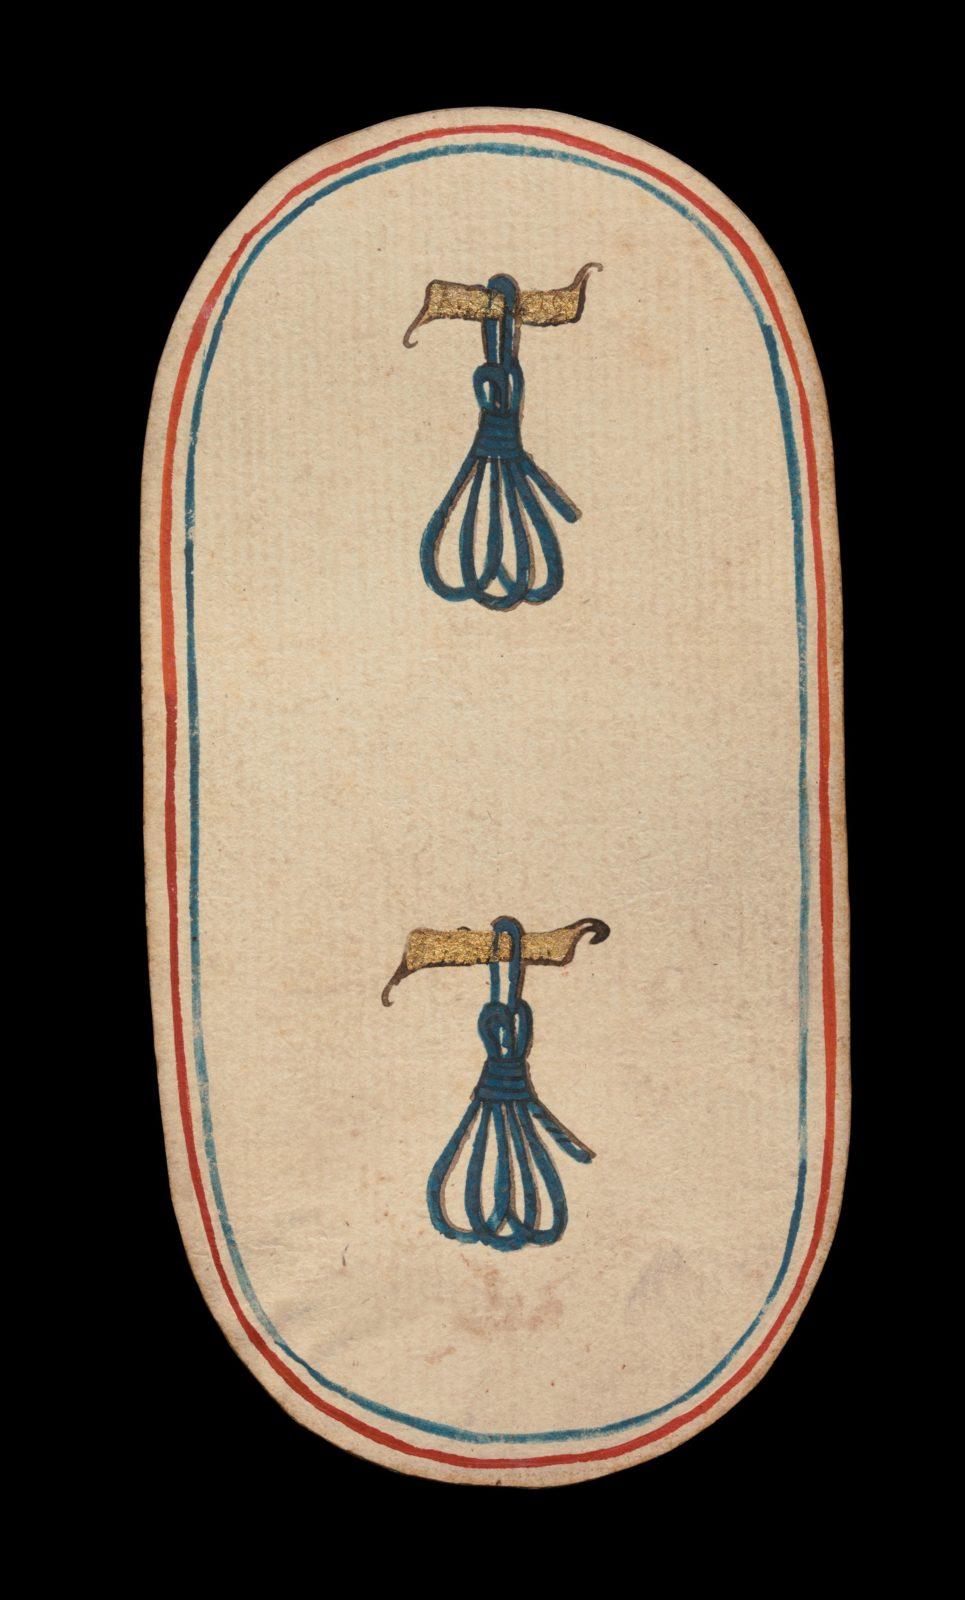 2 of Tethers, from The Cloisters Playing Cards